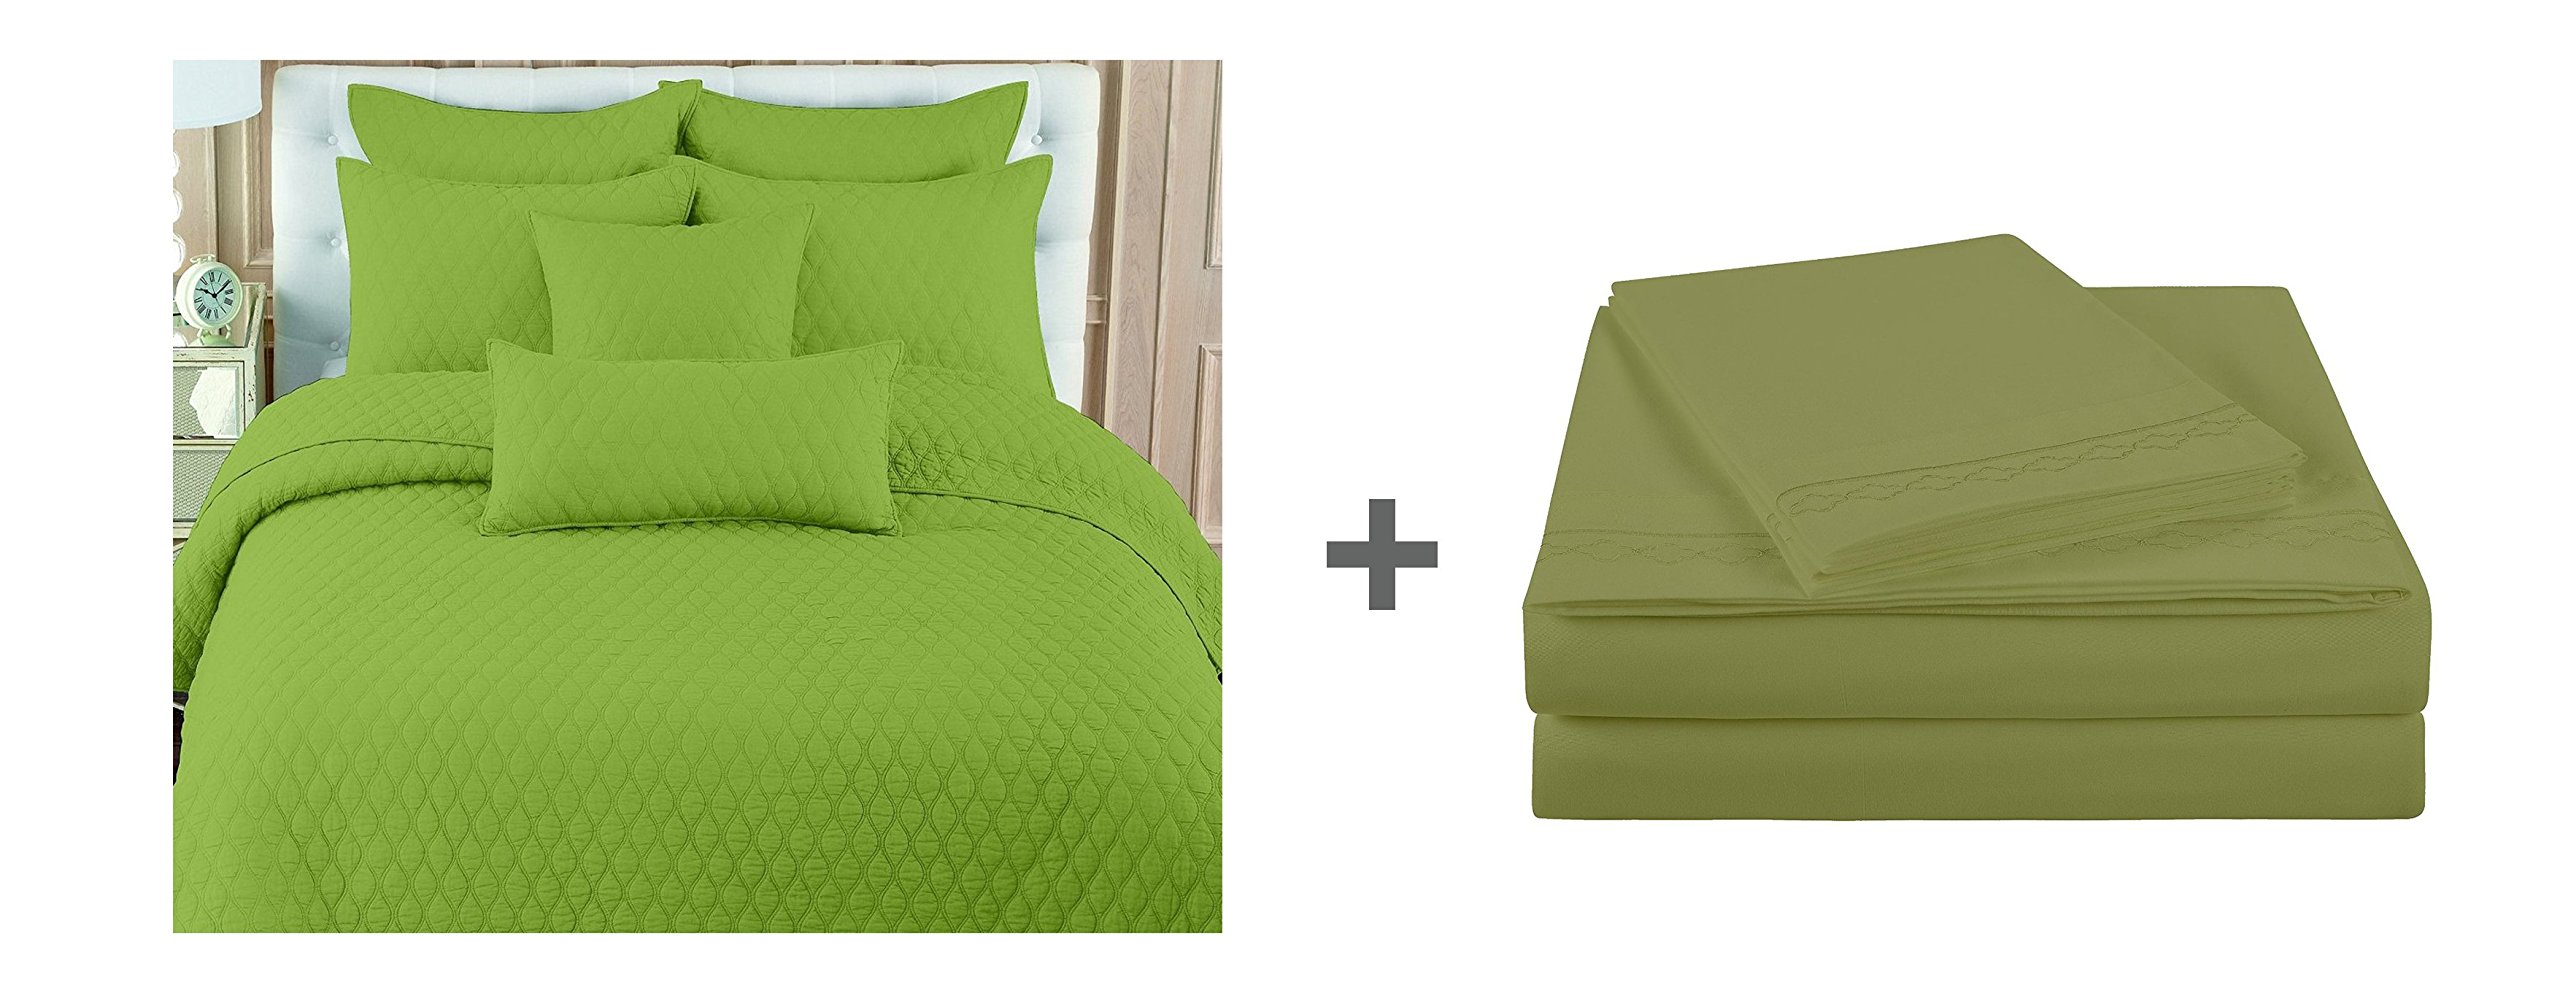 NC Home Fashions 7 pc bed in a bag:Double Ogee Quilt Sets and Geo Oval Sheet Sets,Queen,Fern